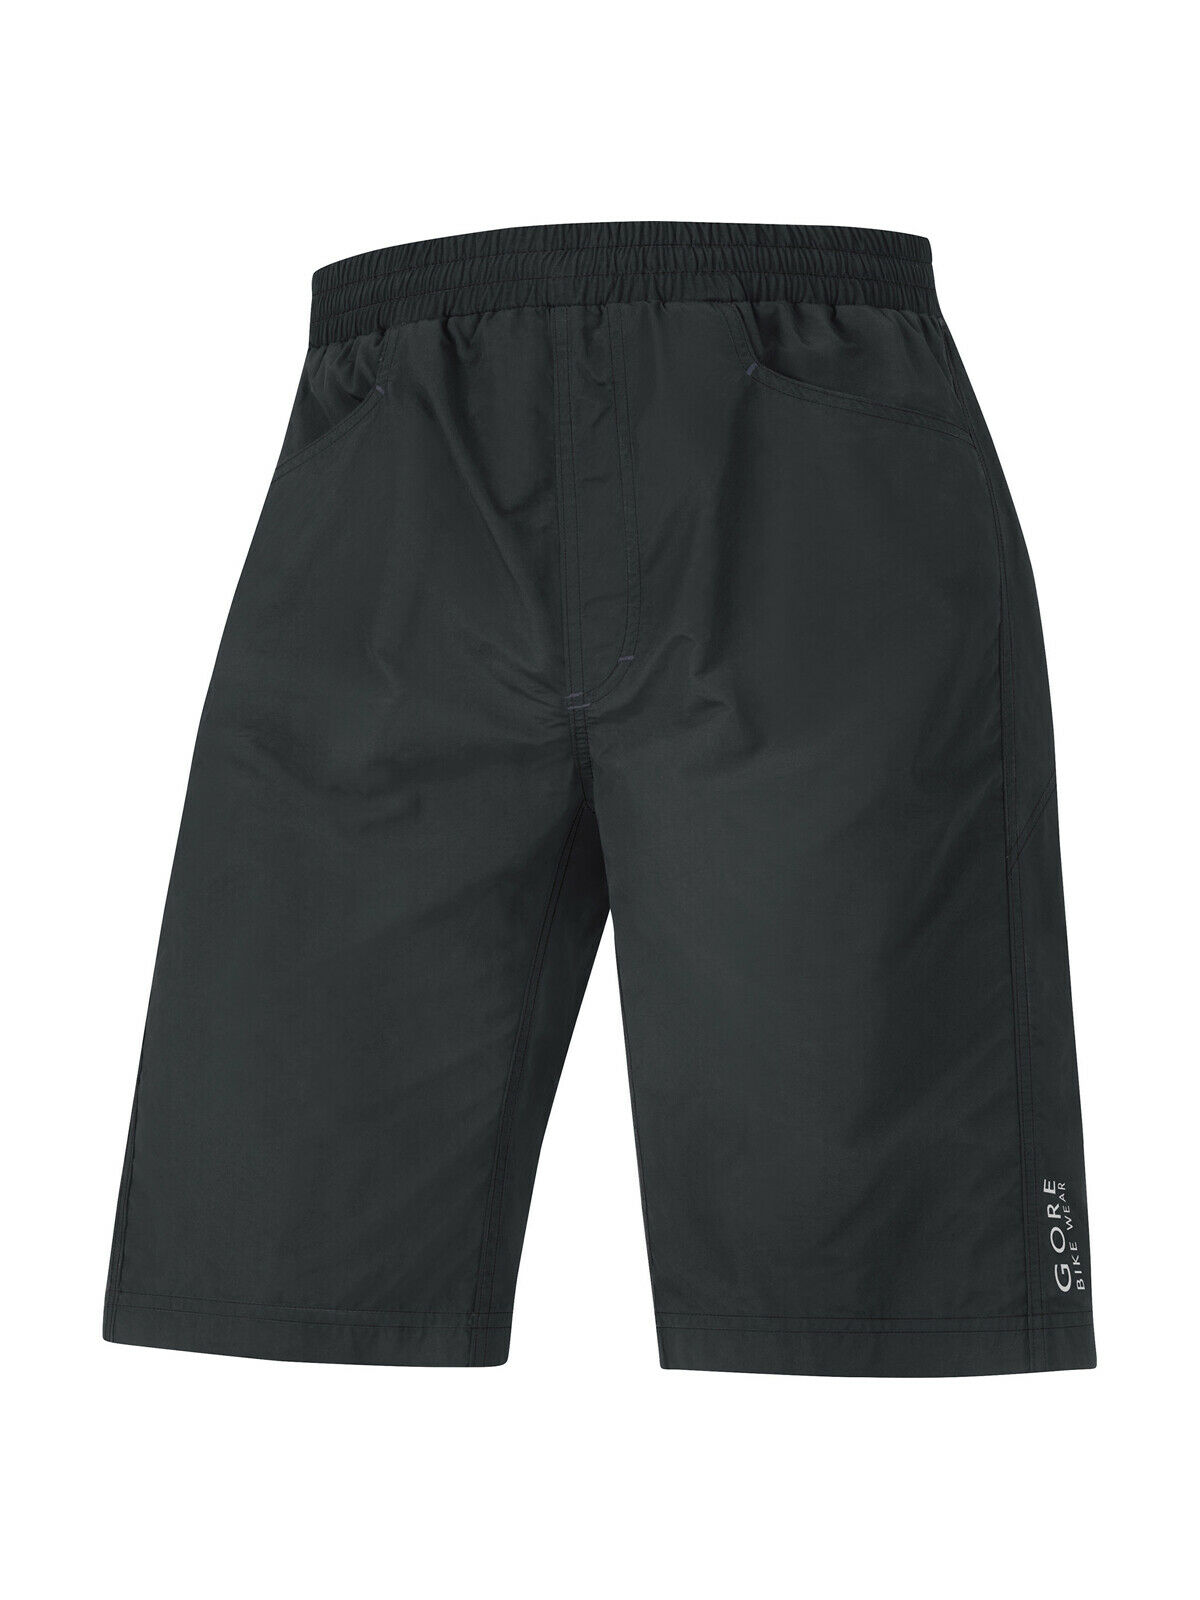 Gore Bike Wear Men's Countdown Tour Shorts - Baggy Outer Cycling Shorts - XL